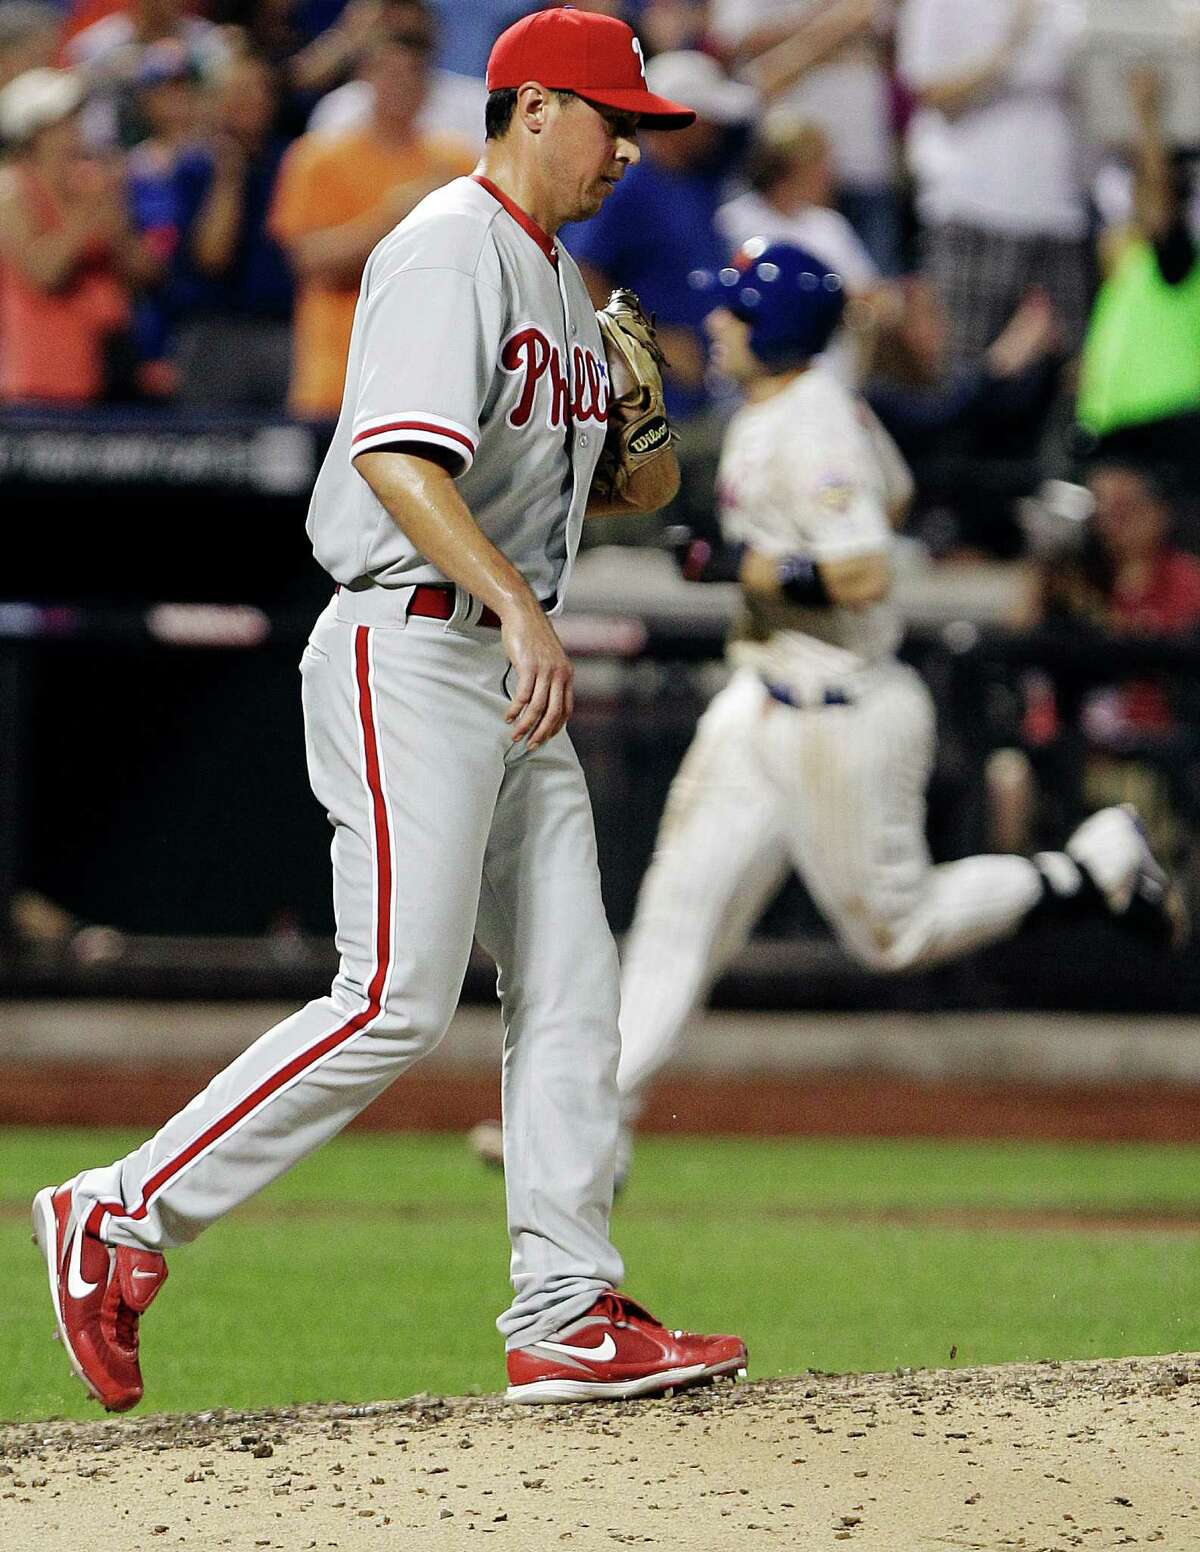 Philadelphia Phillies relief pitcher Brian Sanches reacts as New York Mets' David Wright head to home plate after hitting a three-run home run during the sixth inning of a baseball game, Tuesday, July 3, 2012, in New York. (AP Photo/Frank Franklin II)